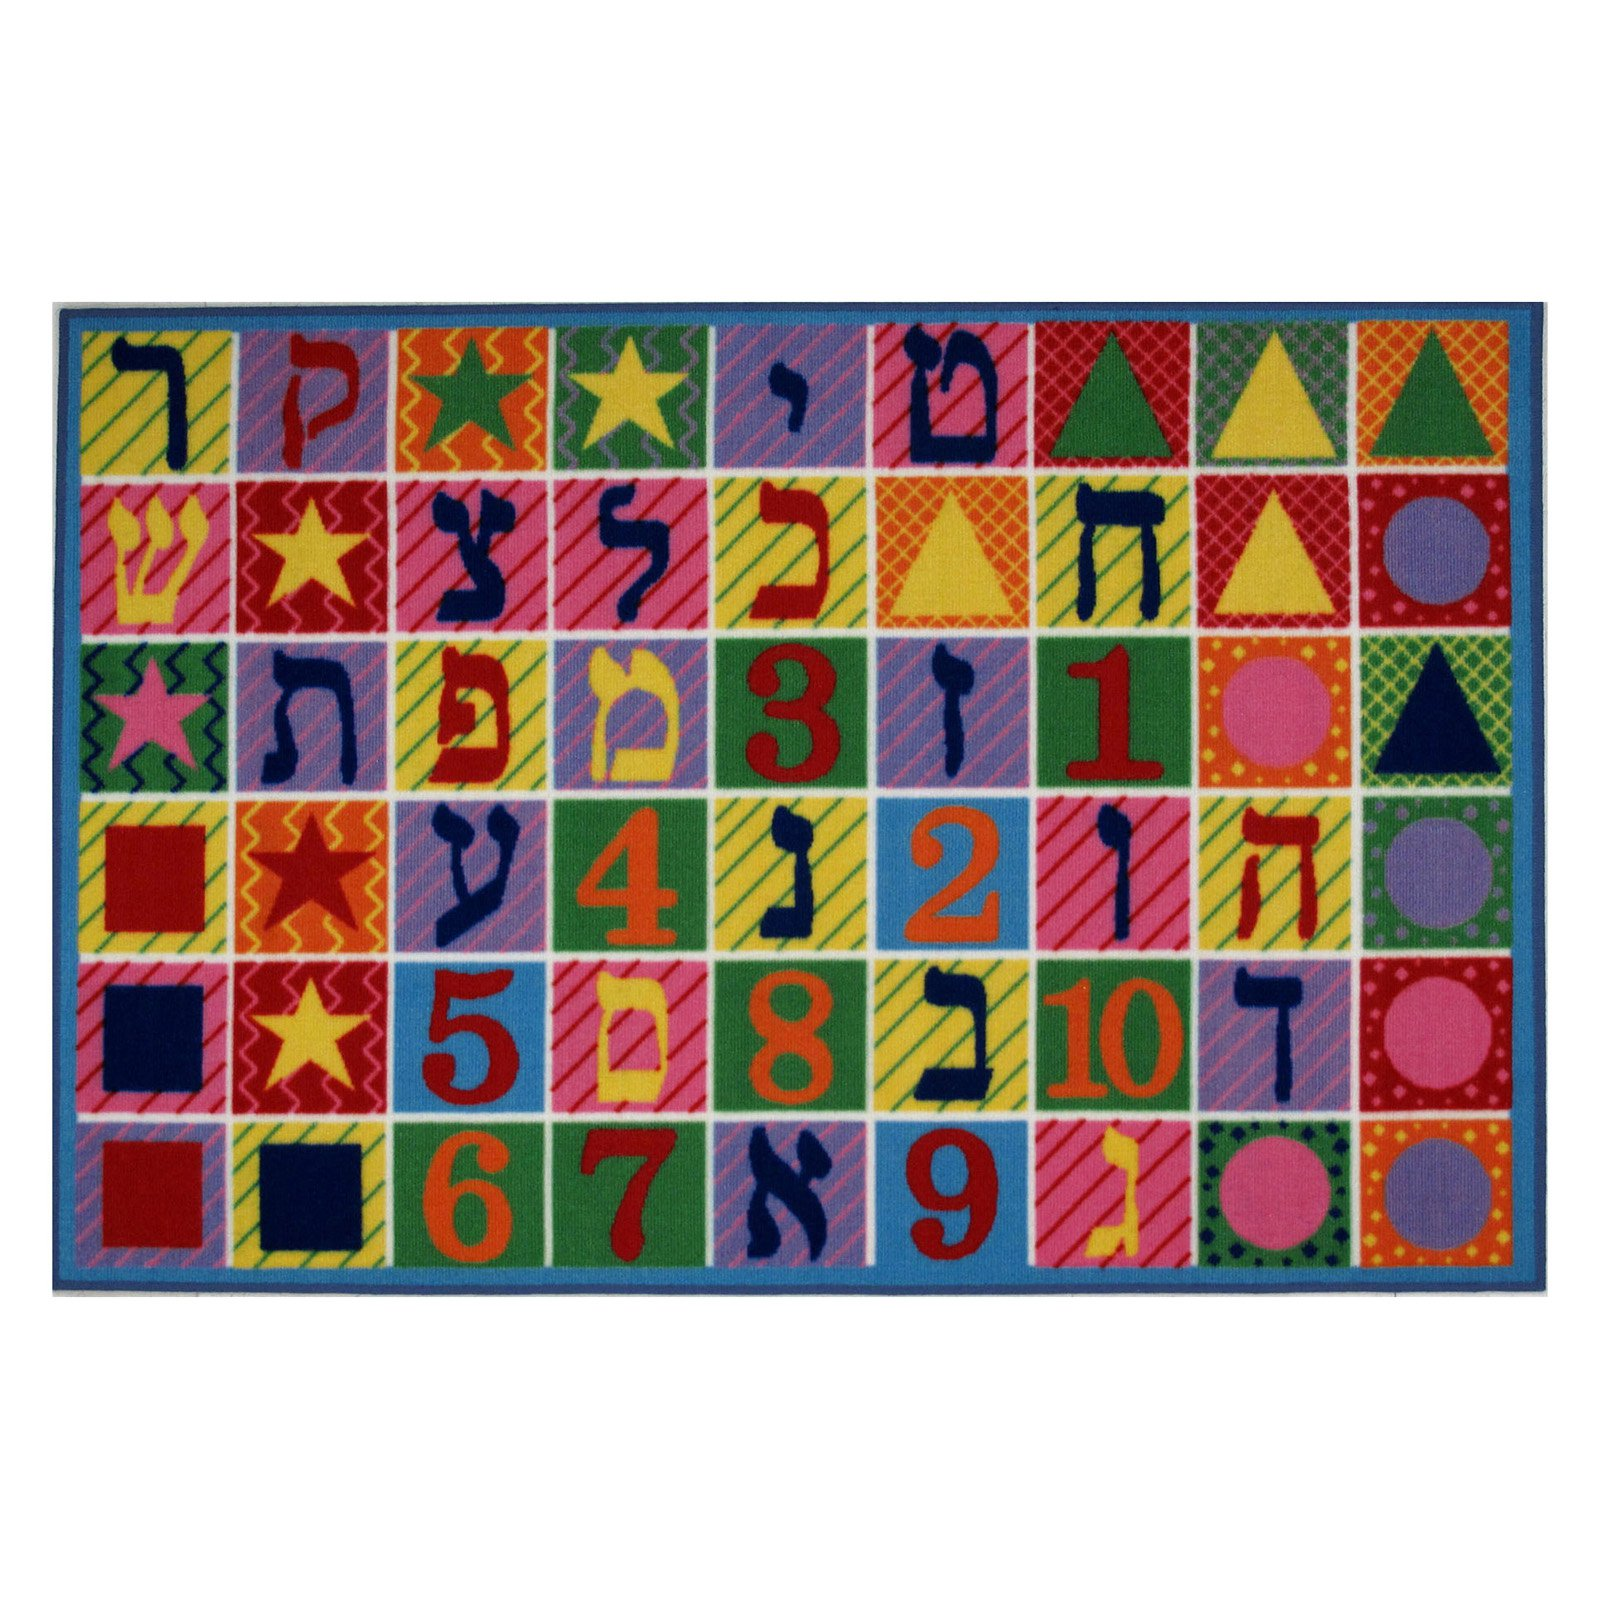 Fun Rugs Fun Time FT-500 Hebrew Numbers and Letters Area Rug - Multicolor